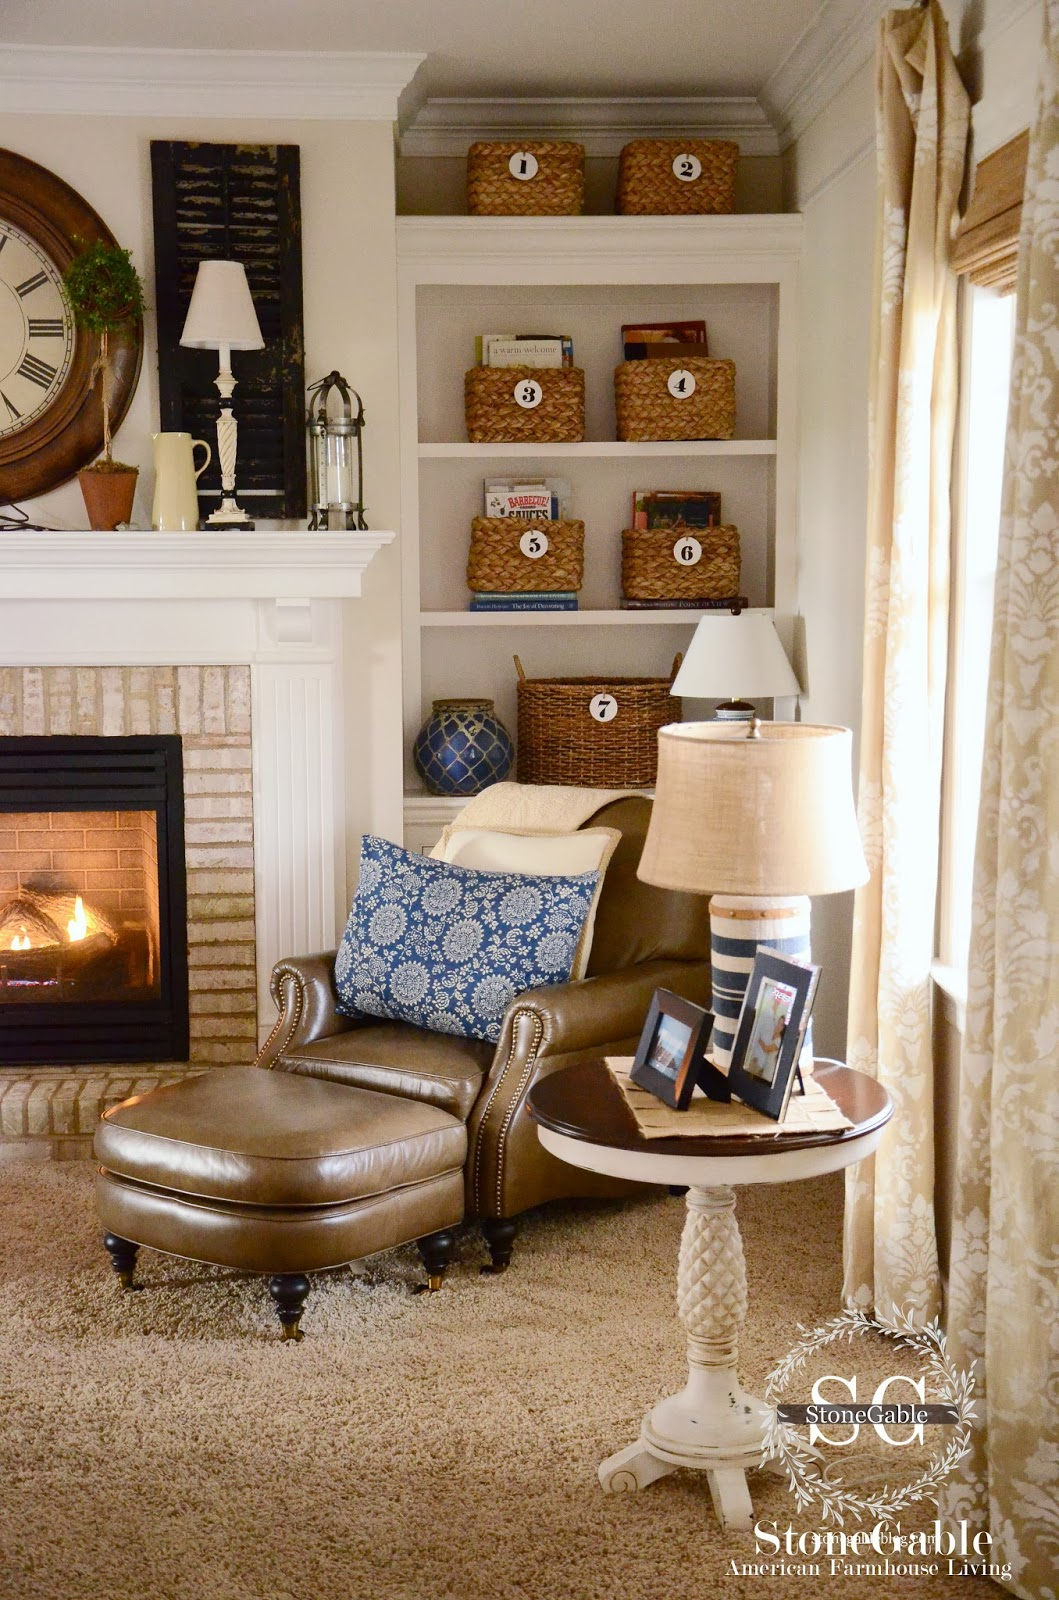 Bookshelves With Baskets Part - 15: Baskets+in+Bookshelves-stonegableblog.com.jpg